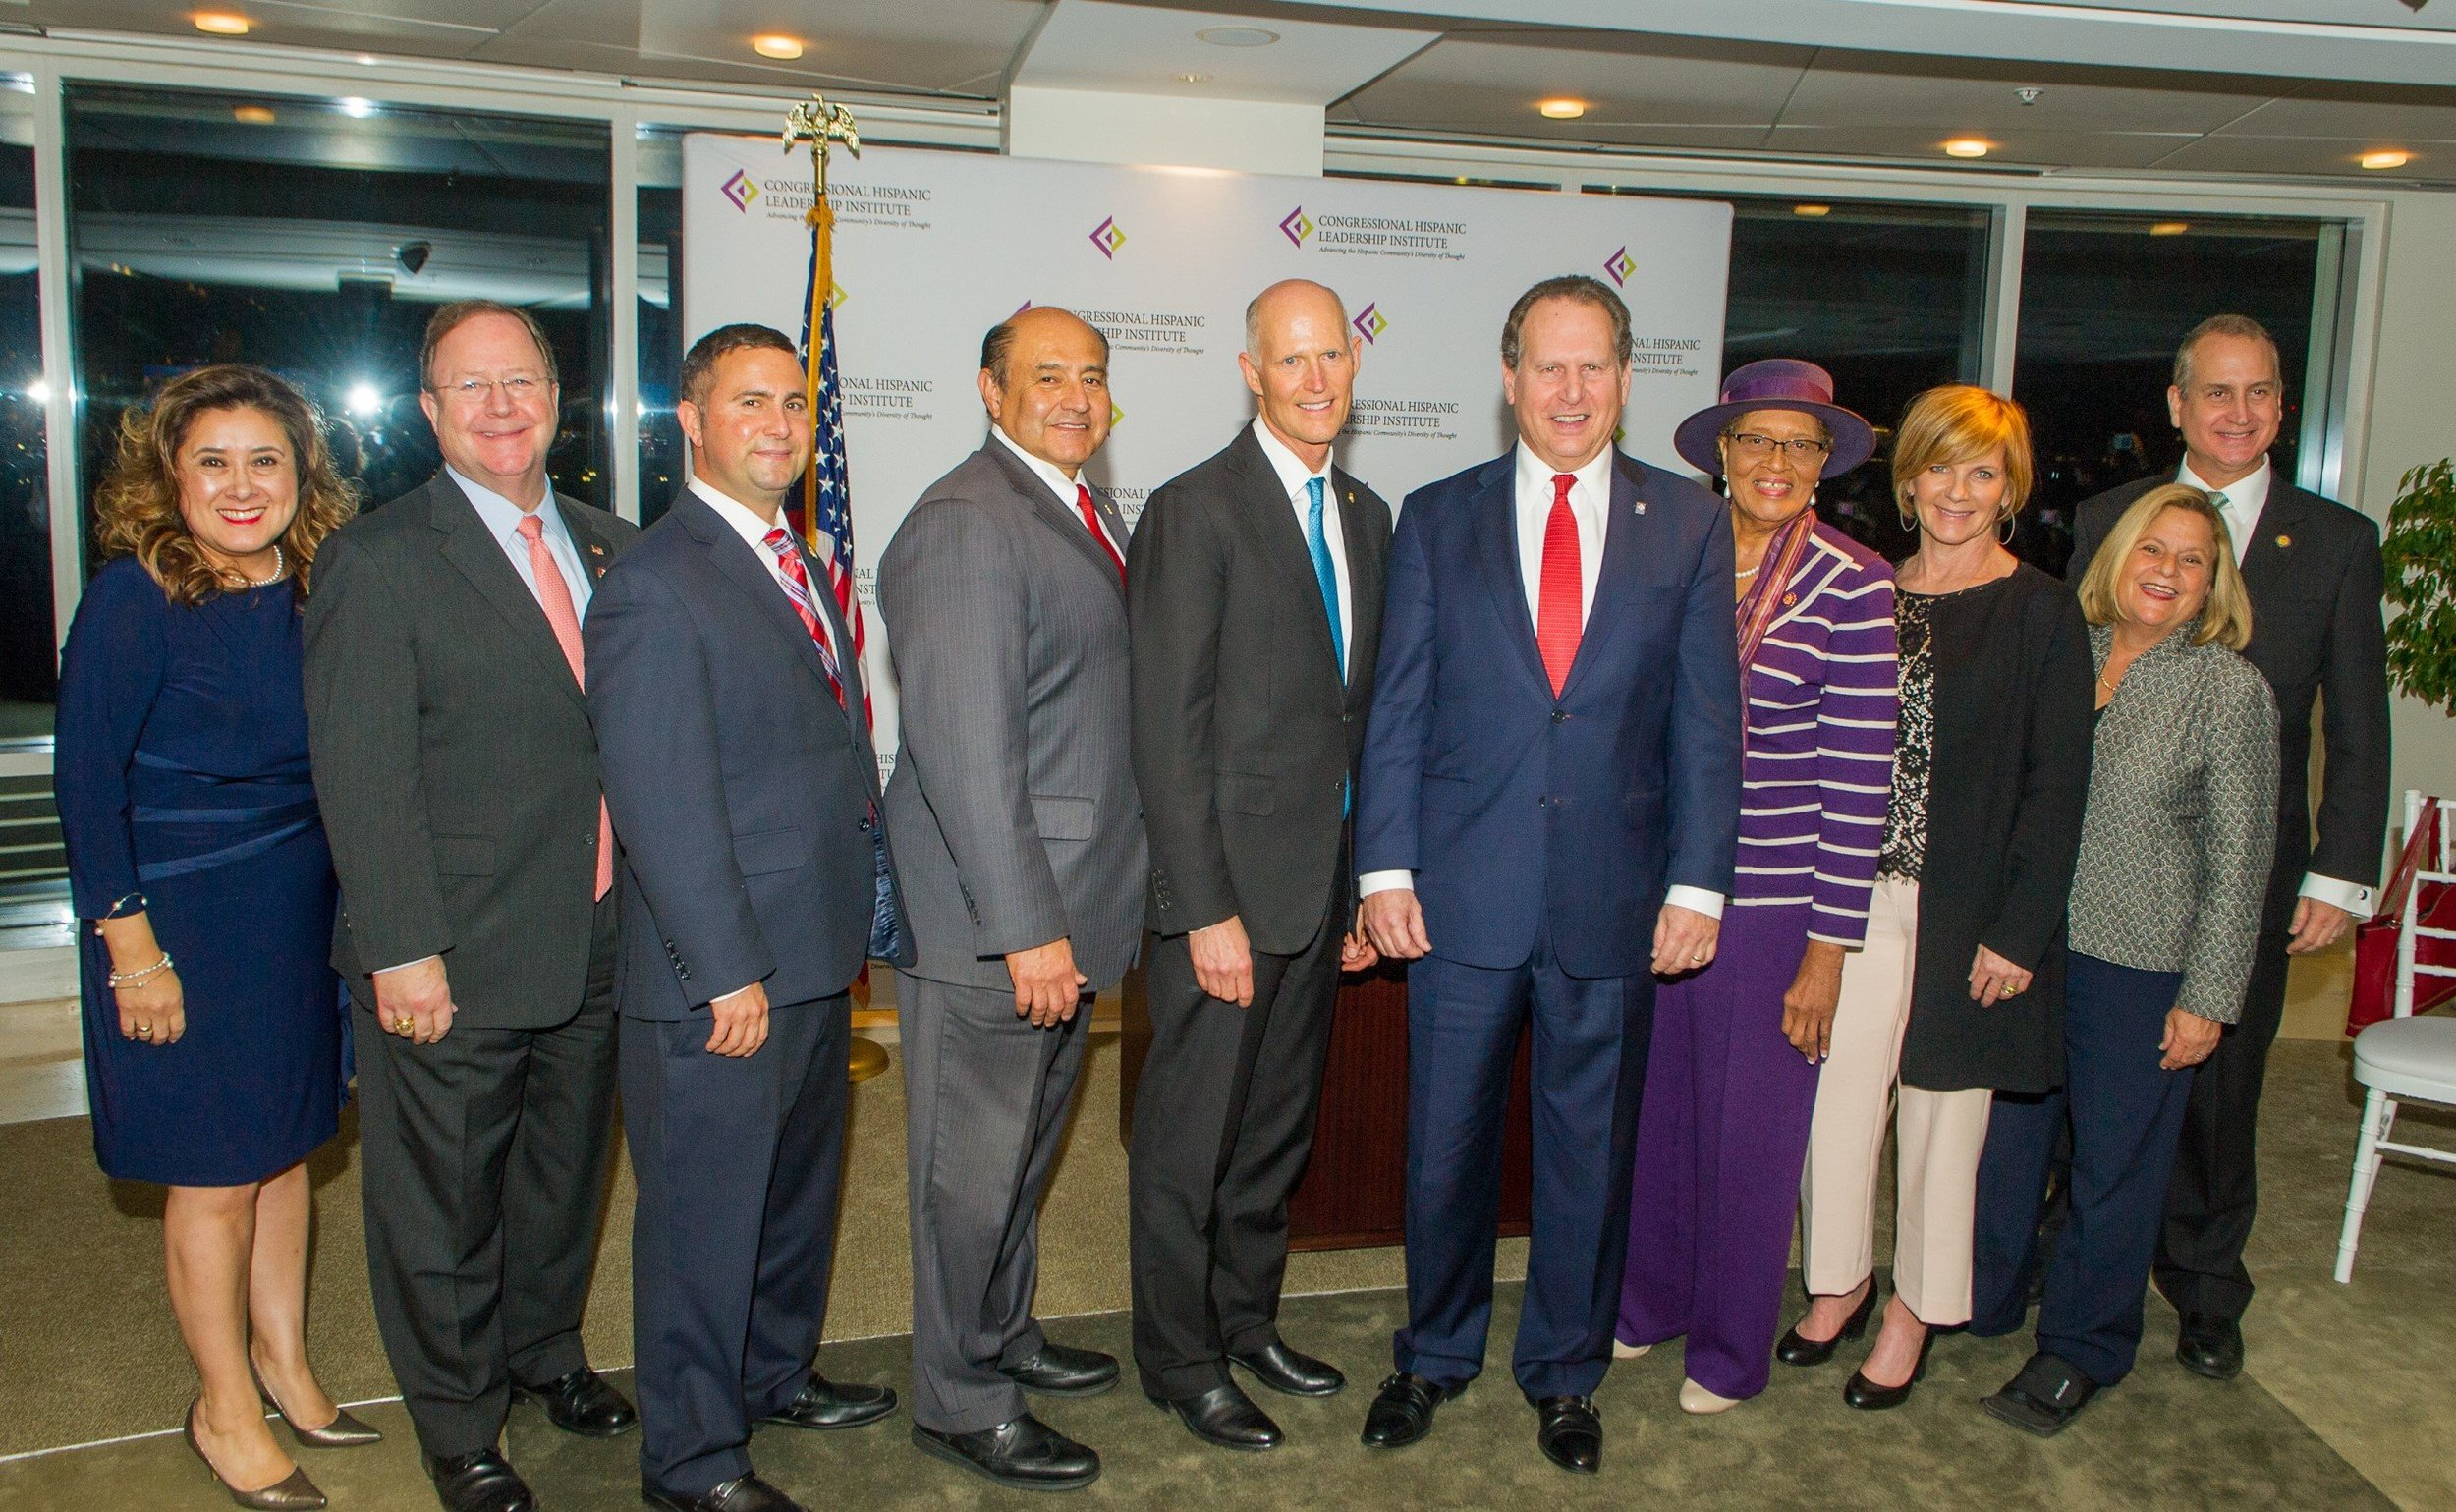 Photo left to right: CHLI President & CEO, Mrs. Gomez Orta; Rep. Flores; Rep. Soto; Rep. Correa; Sen. Scott; CHLI Chairman Lincoln Diaz-Balart; Rep. Adams; Rep. Lee; The Honorable Ileana Ros-Lehtinen; and Rep. Diaz-Balart.